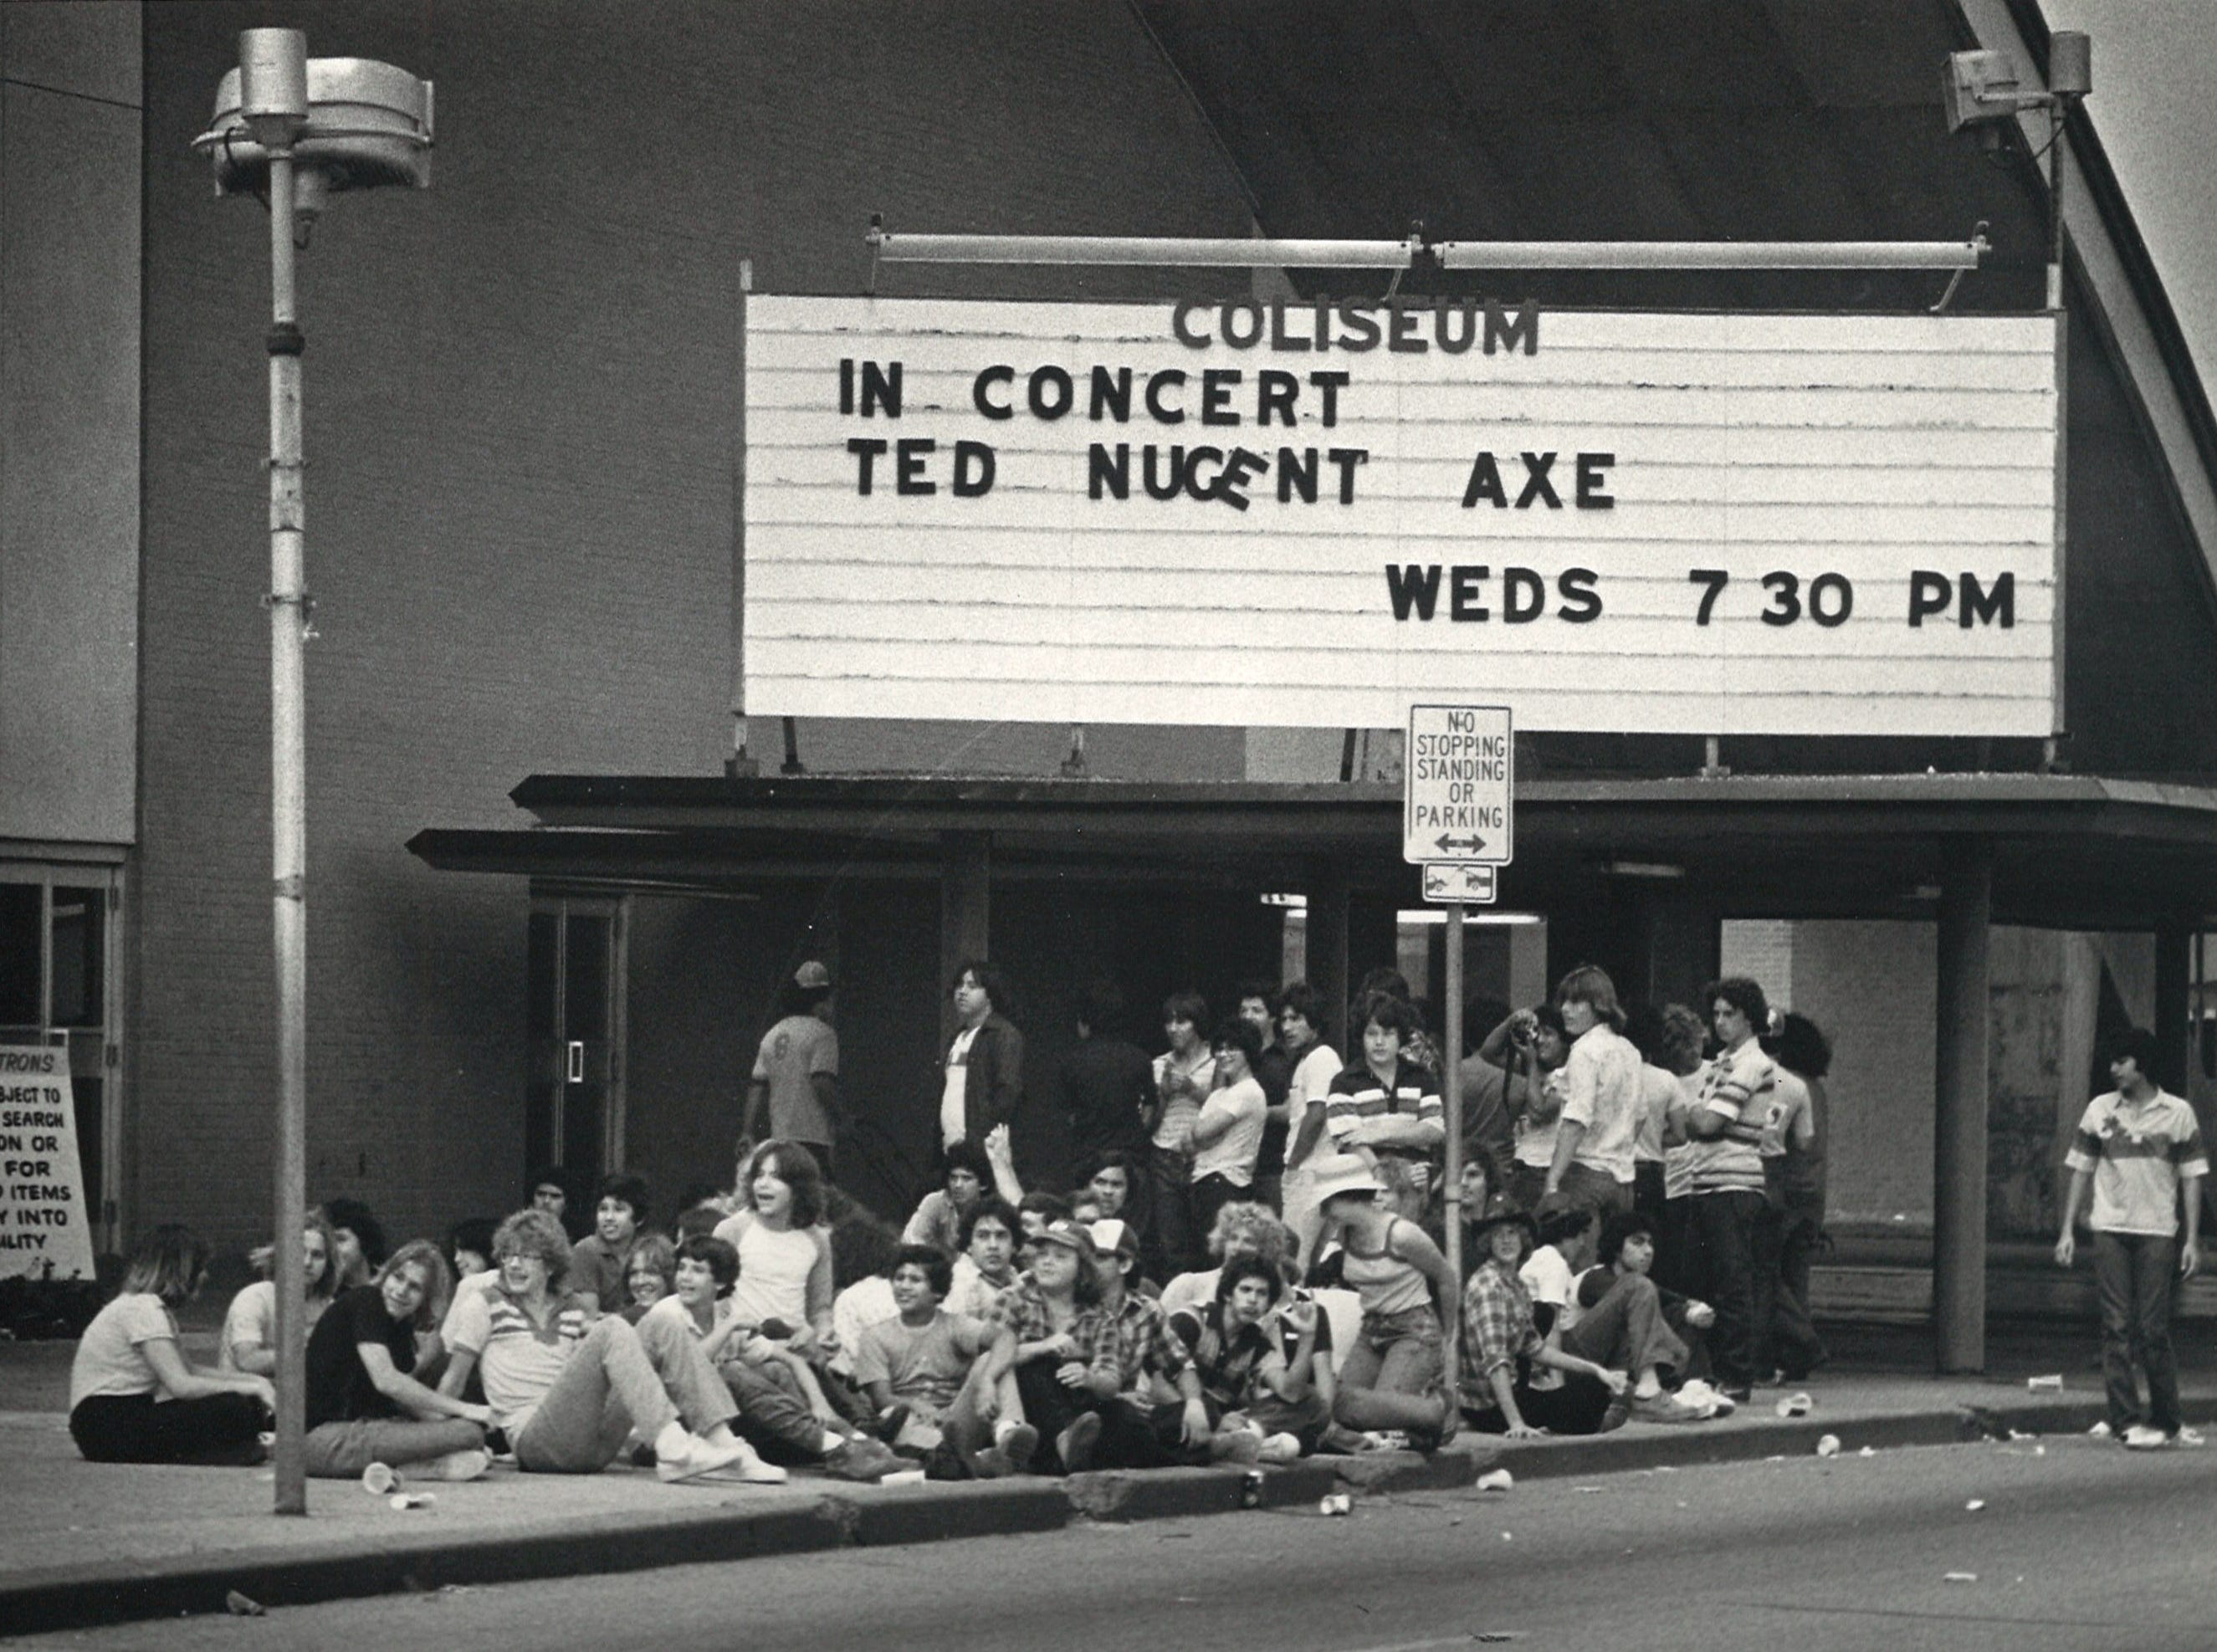 Concertgoers line up for tickets to see Ted Nugent and Axe at Memorial Coliseum in April 1980.